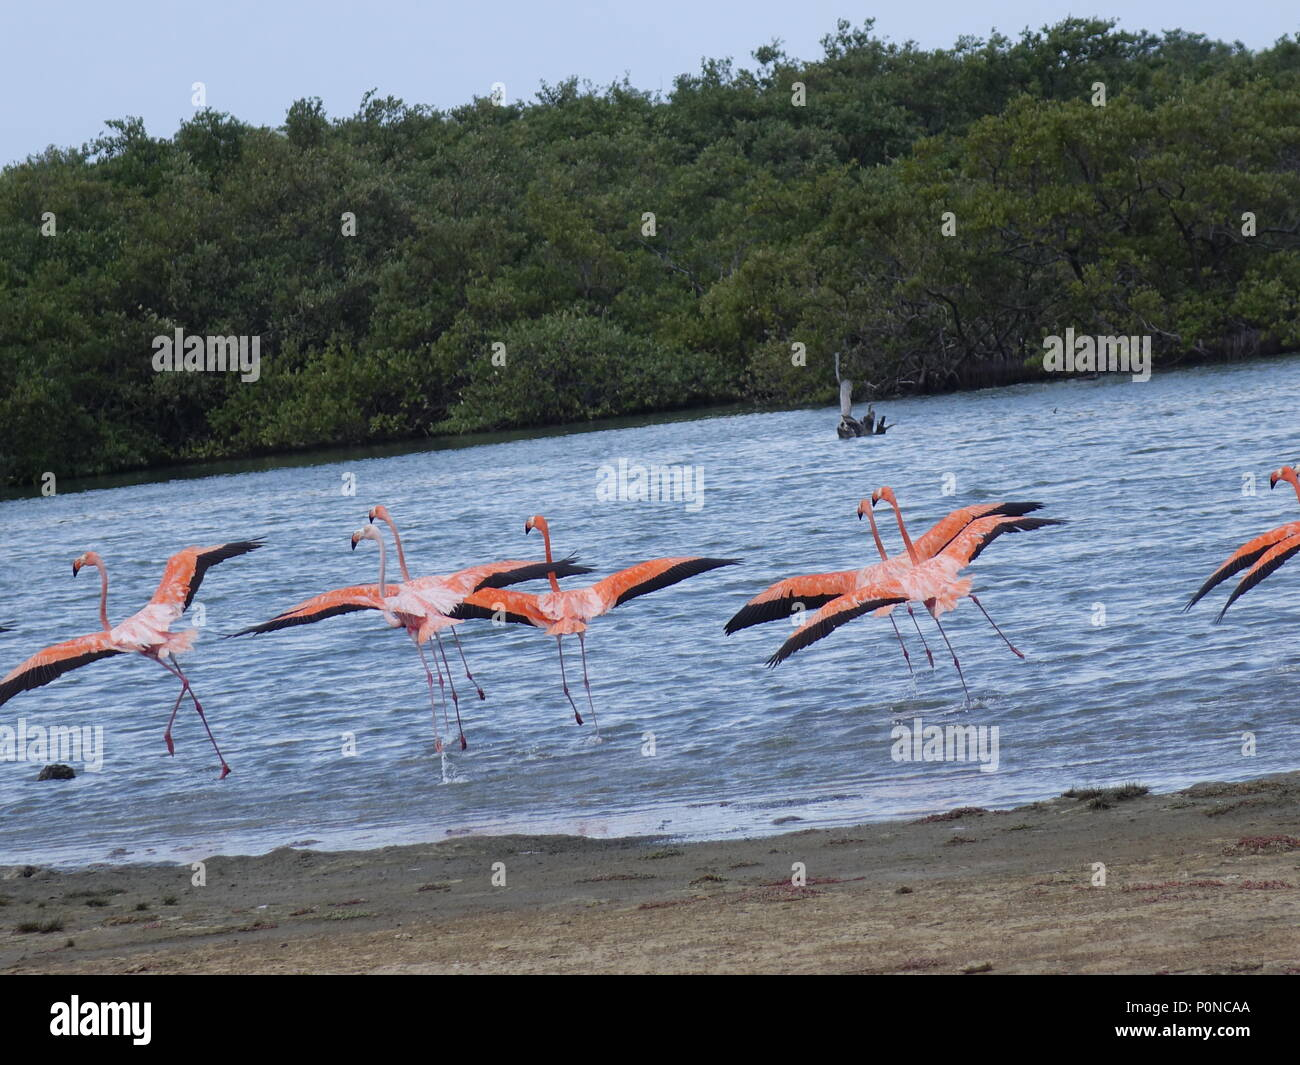 Flamingo's Taking off in the nature - Stock Image